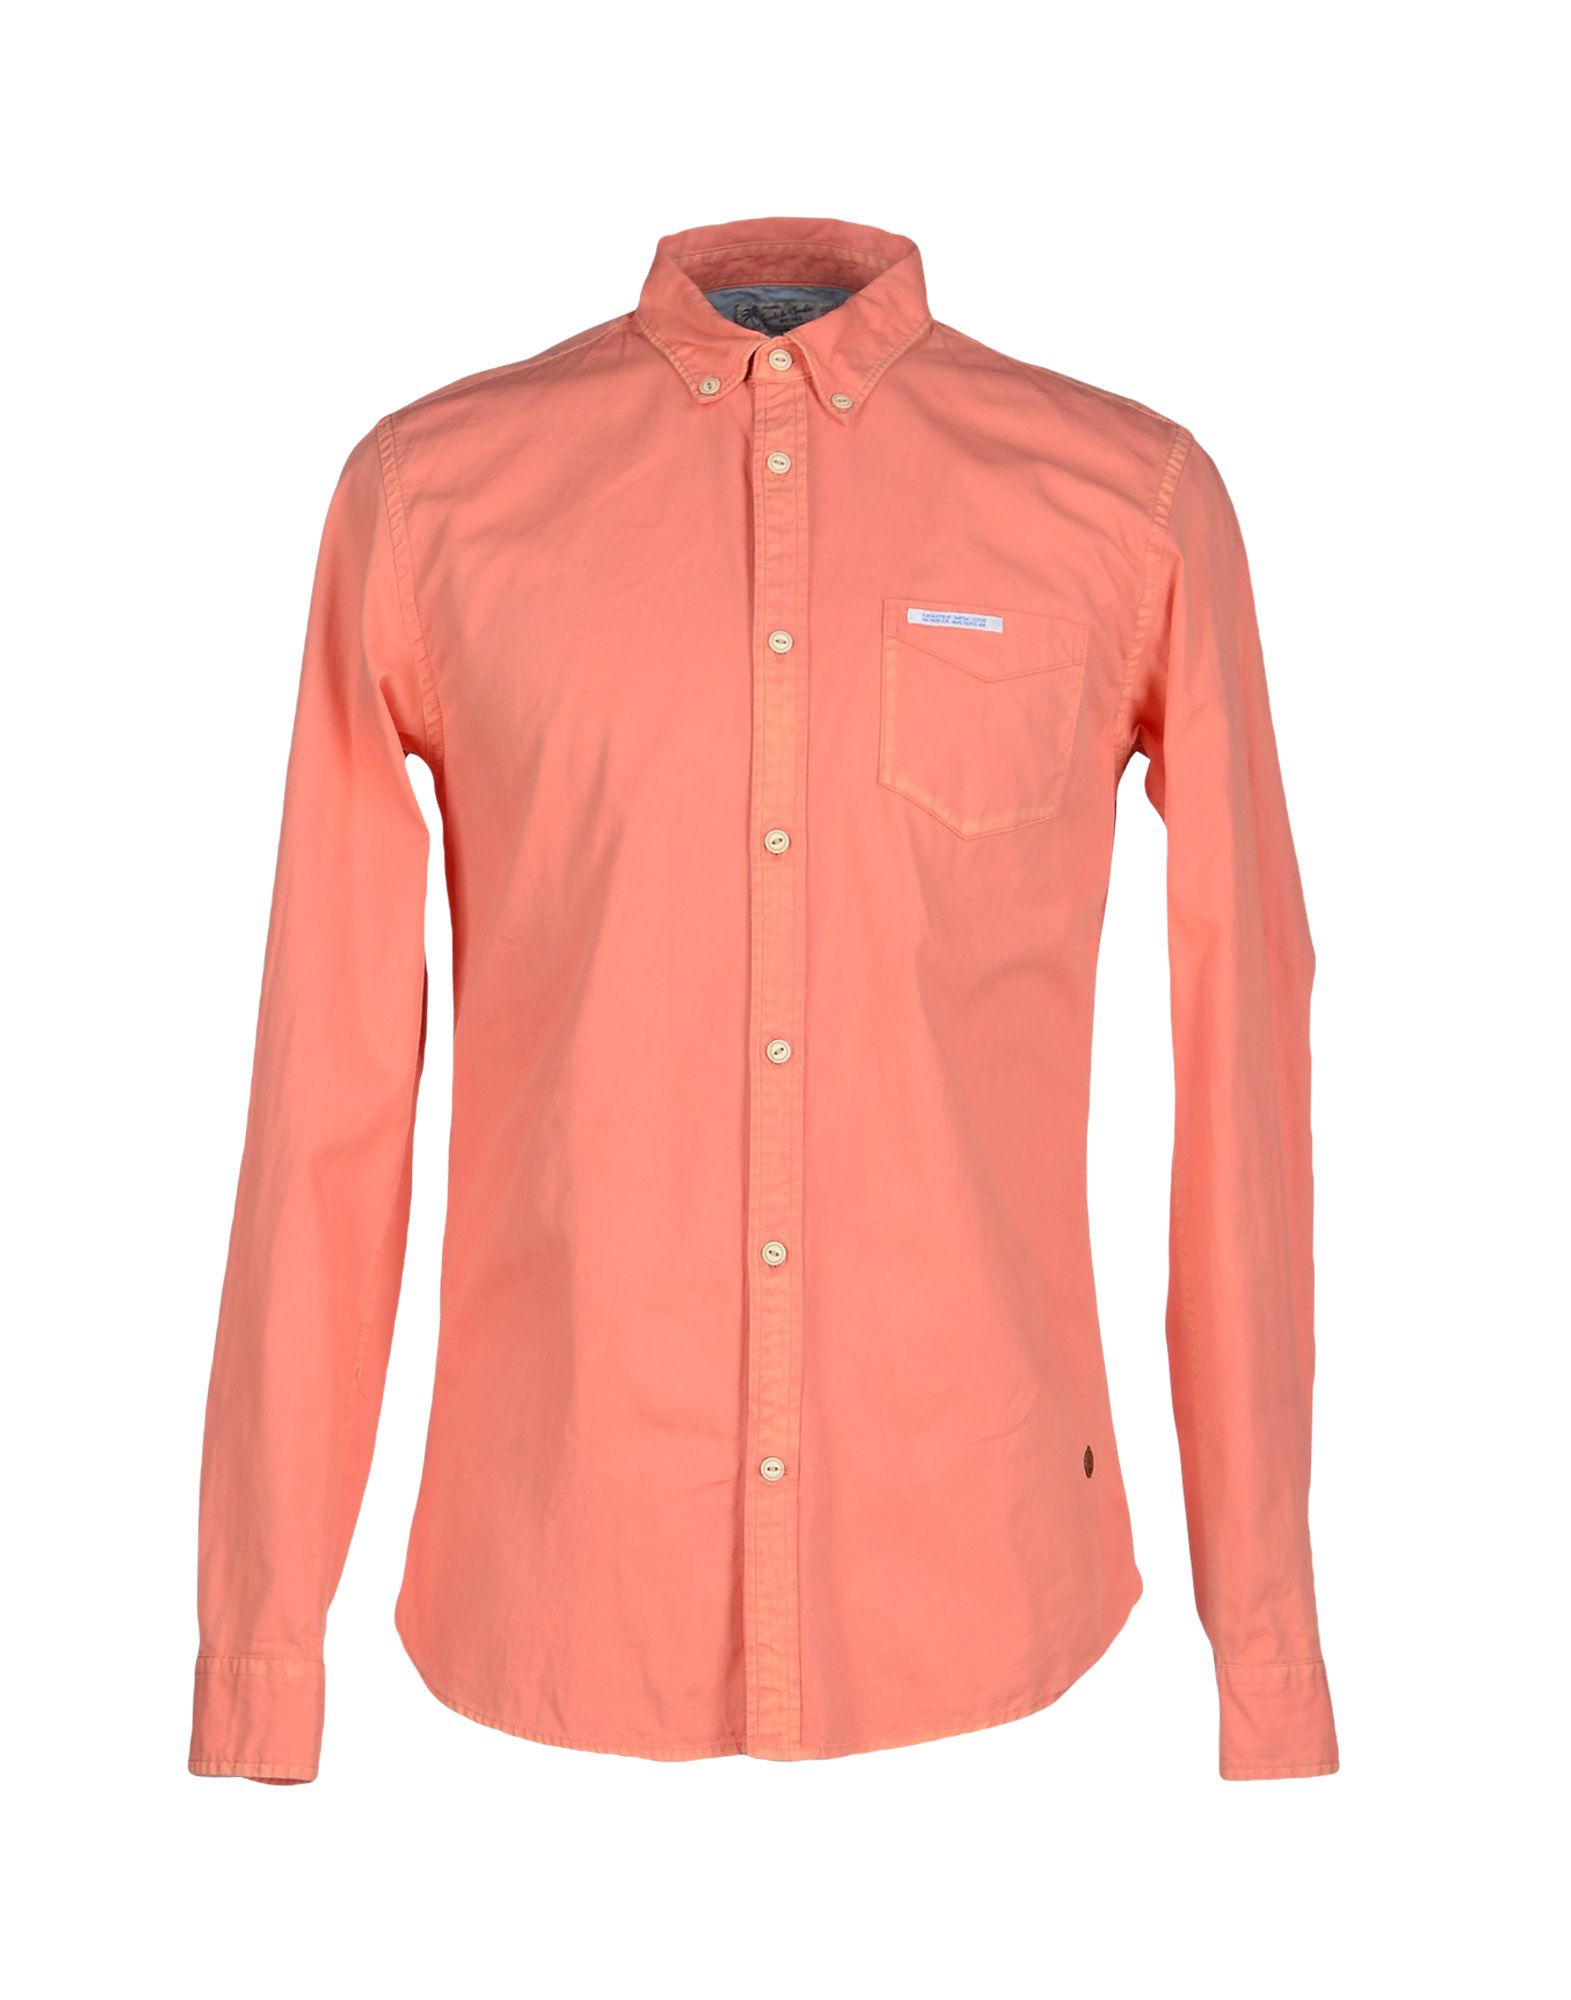 Scotch & soda Shirt in Pink for Men | Lyst